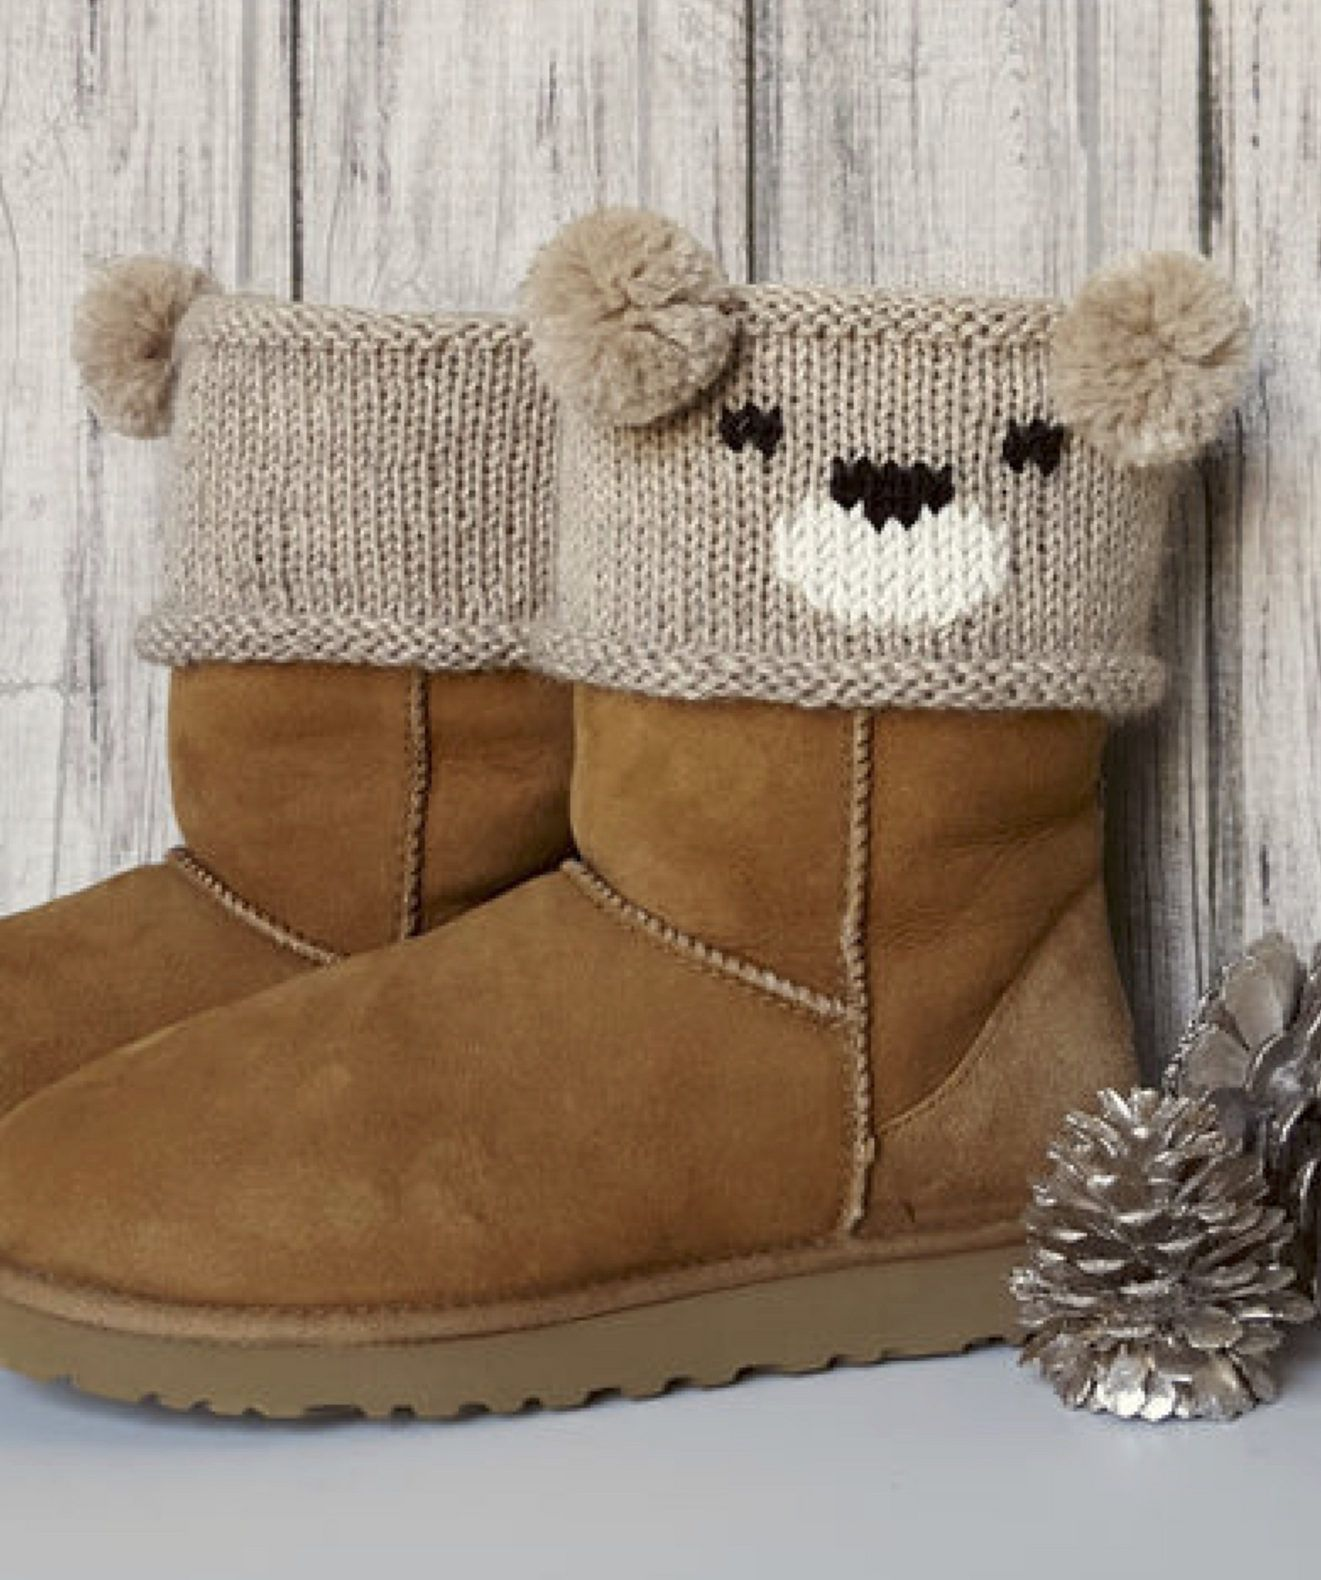 Free knitting pattern for teddy bear boot toppers i love to knit free knitting pattern for teddy bear boot toppers bankloansurffo Gallery